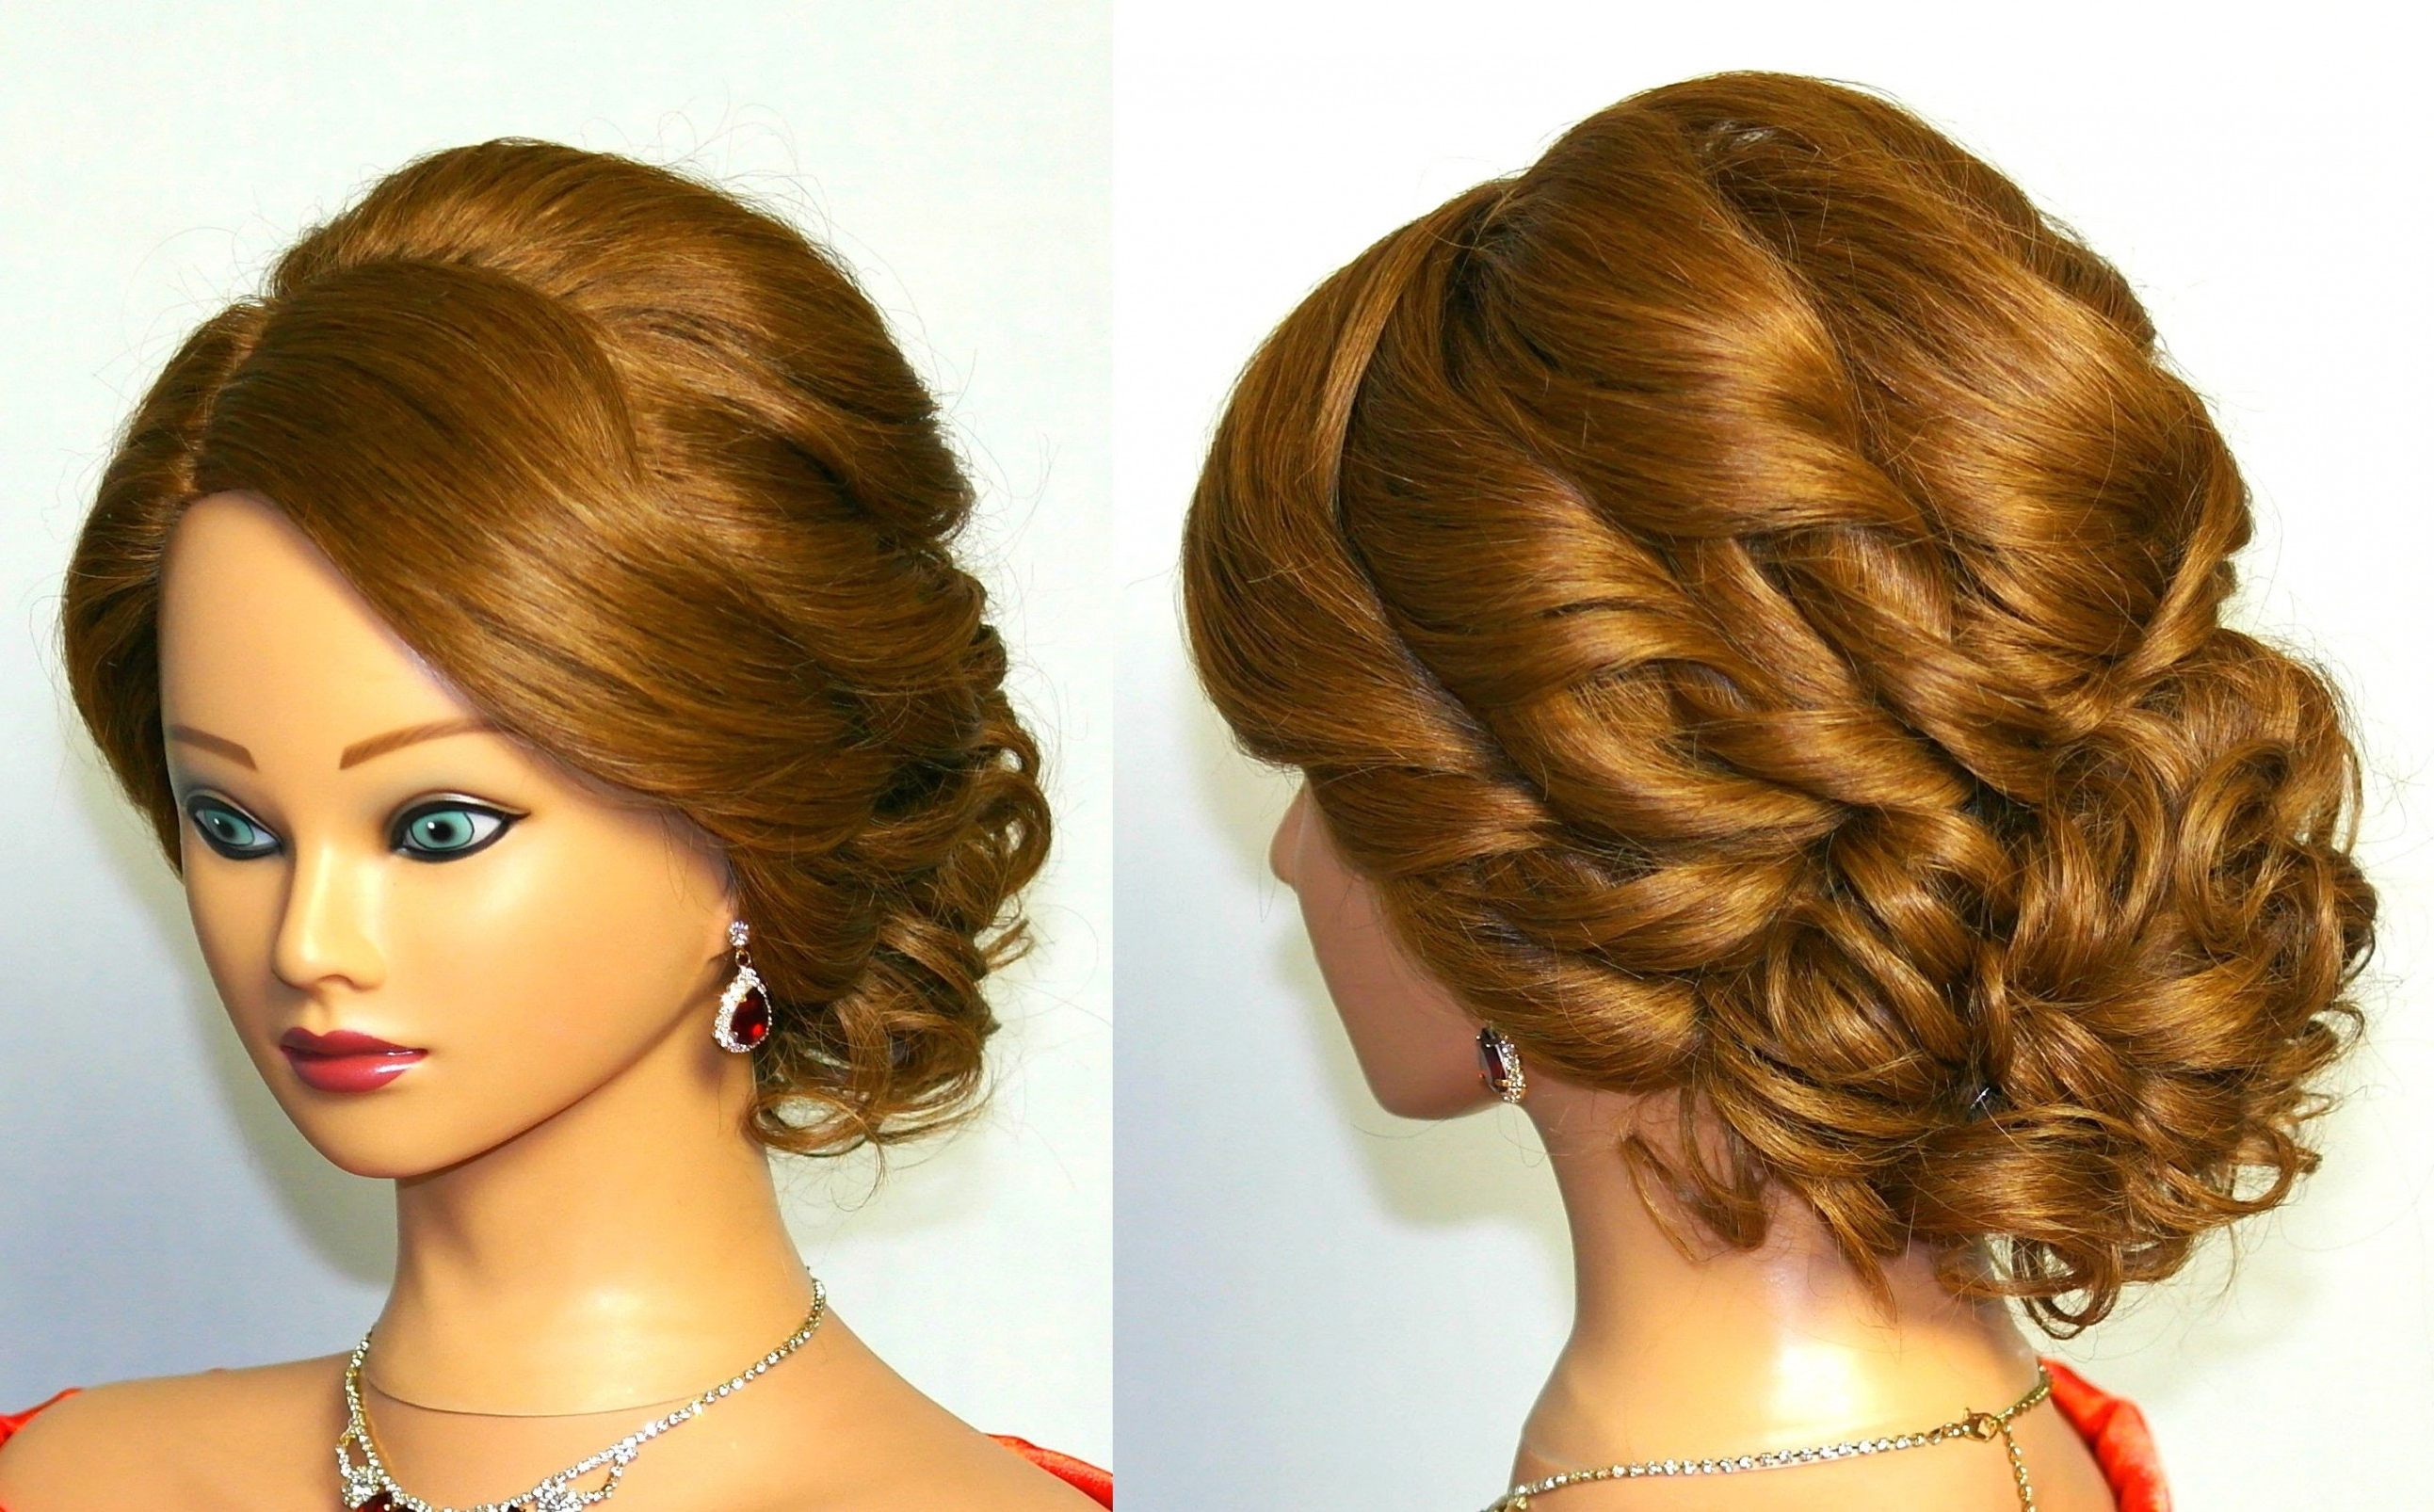 Hair Updo Hairstyles Bridal Curly Updo Hairstyle For Medium Hair Regarding Updo Medium Hairstyles (View 11 of 15)